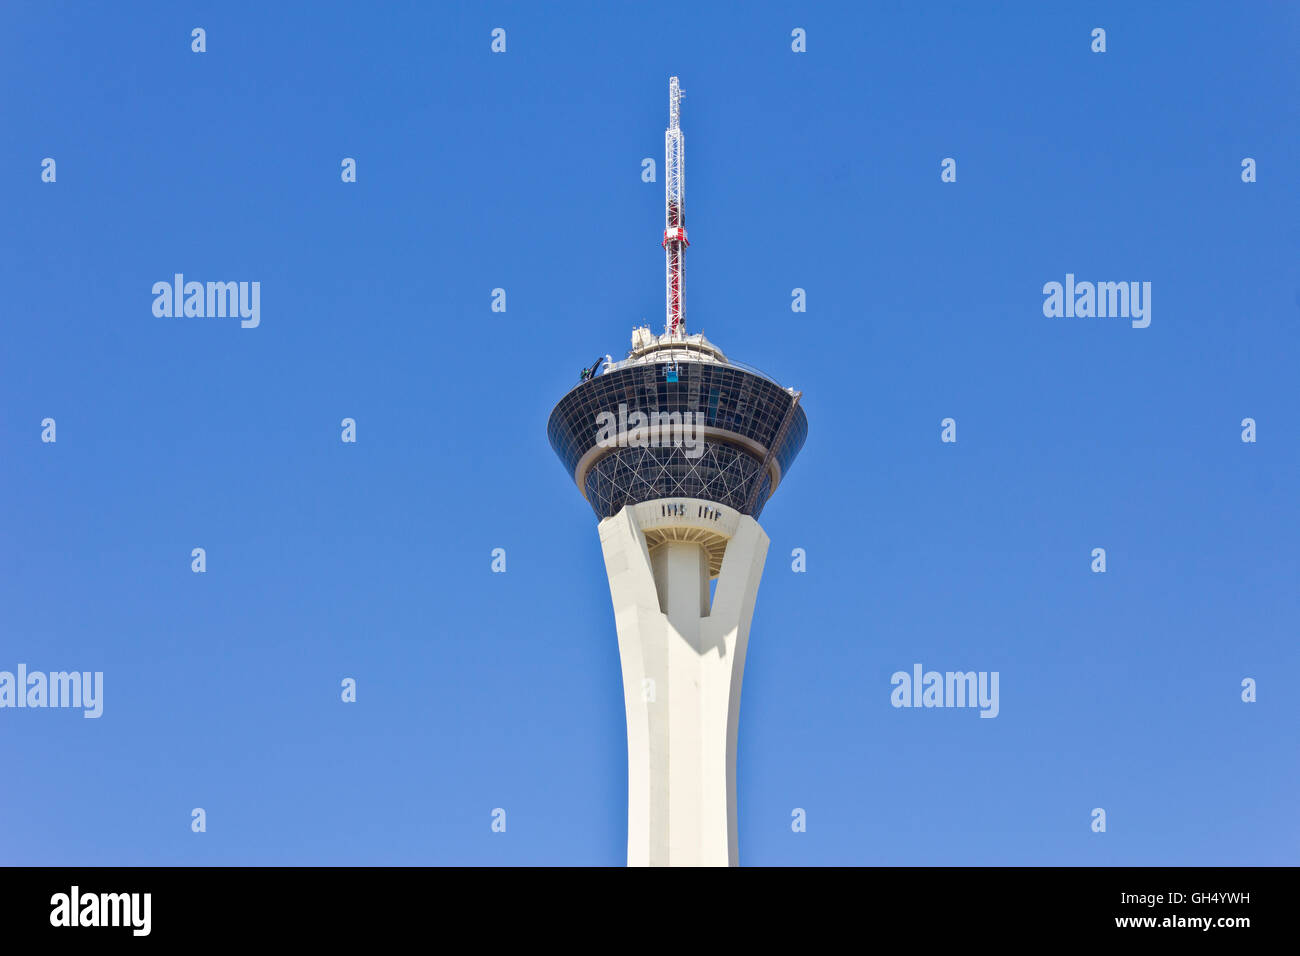 Las Vegas - Circa July 2016: Stratosphere Tower, the tallest freestanding observation tower in the US II - Stock Image